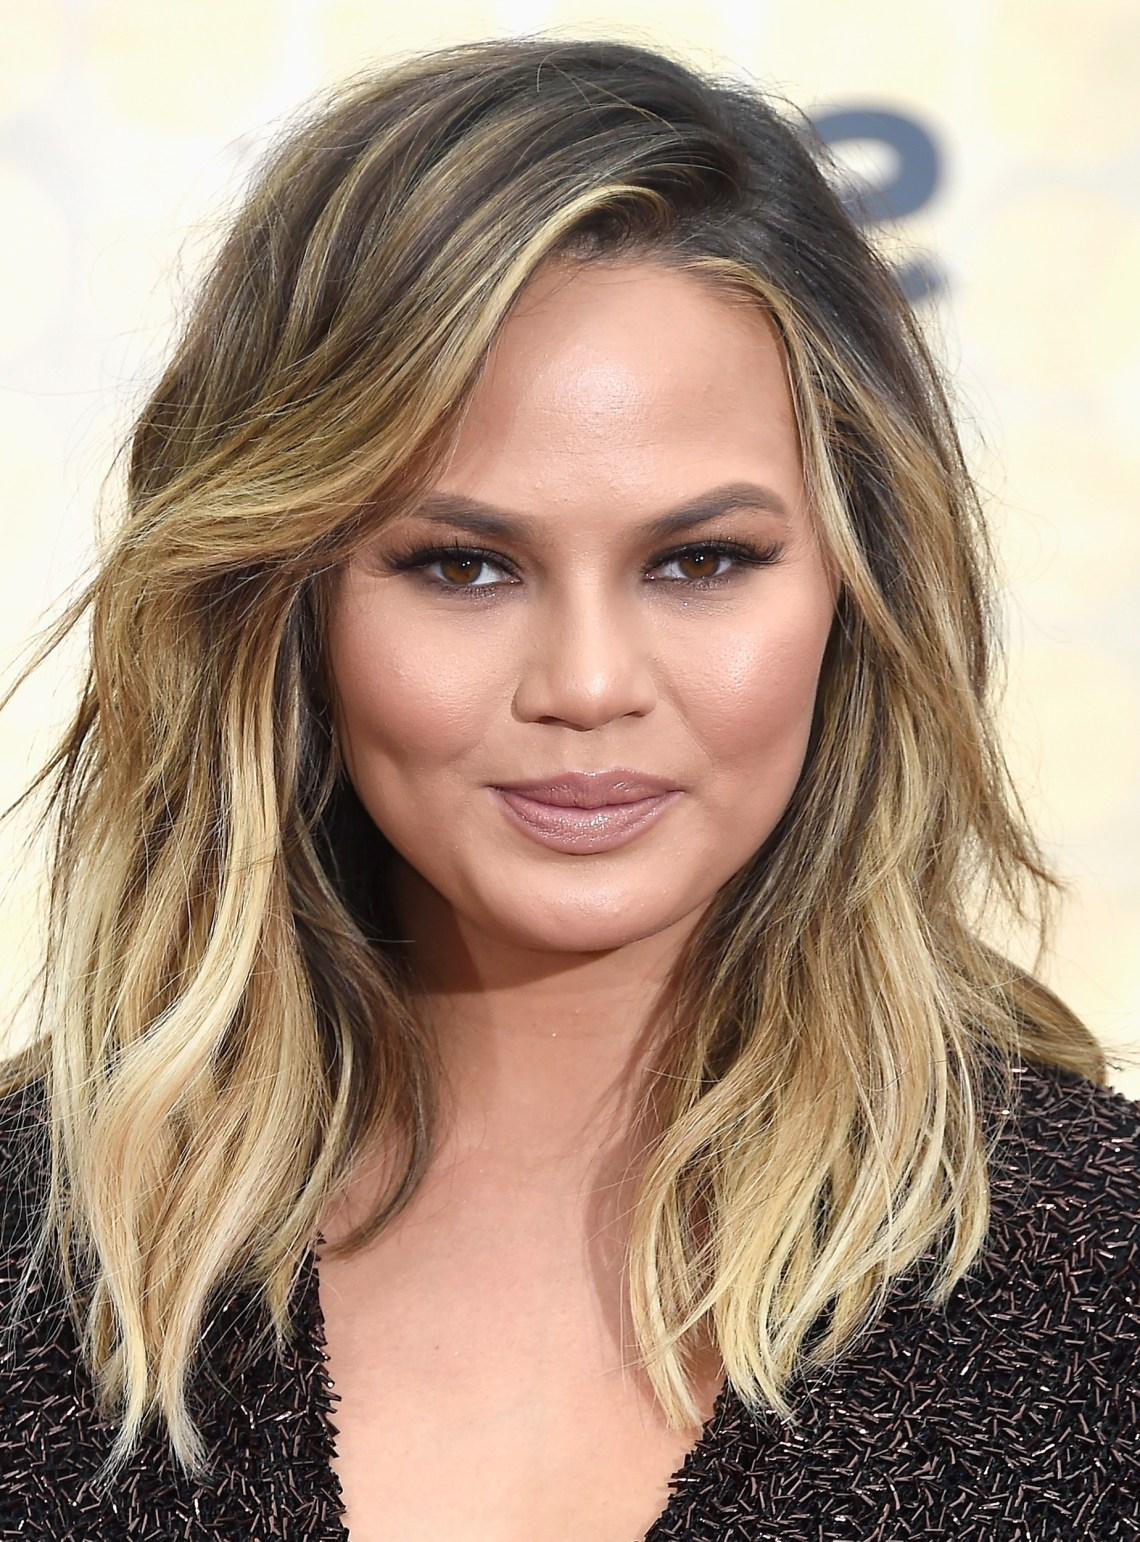 28 Best Hairstyles For Round Faces 30+ Amazing Round Face Layered Low Maintenance Medium Length Hairstyles